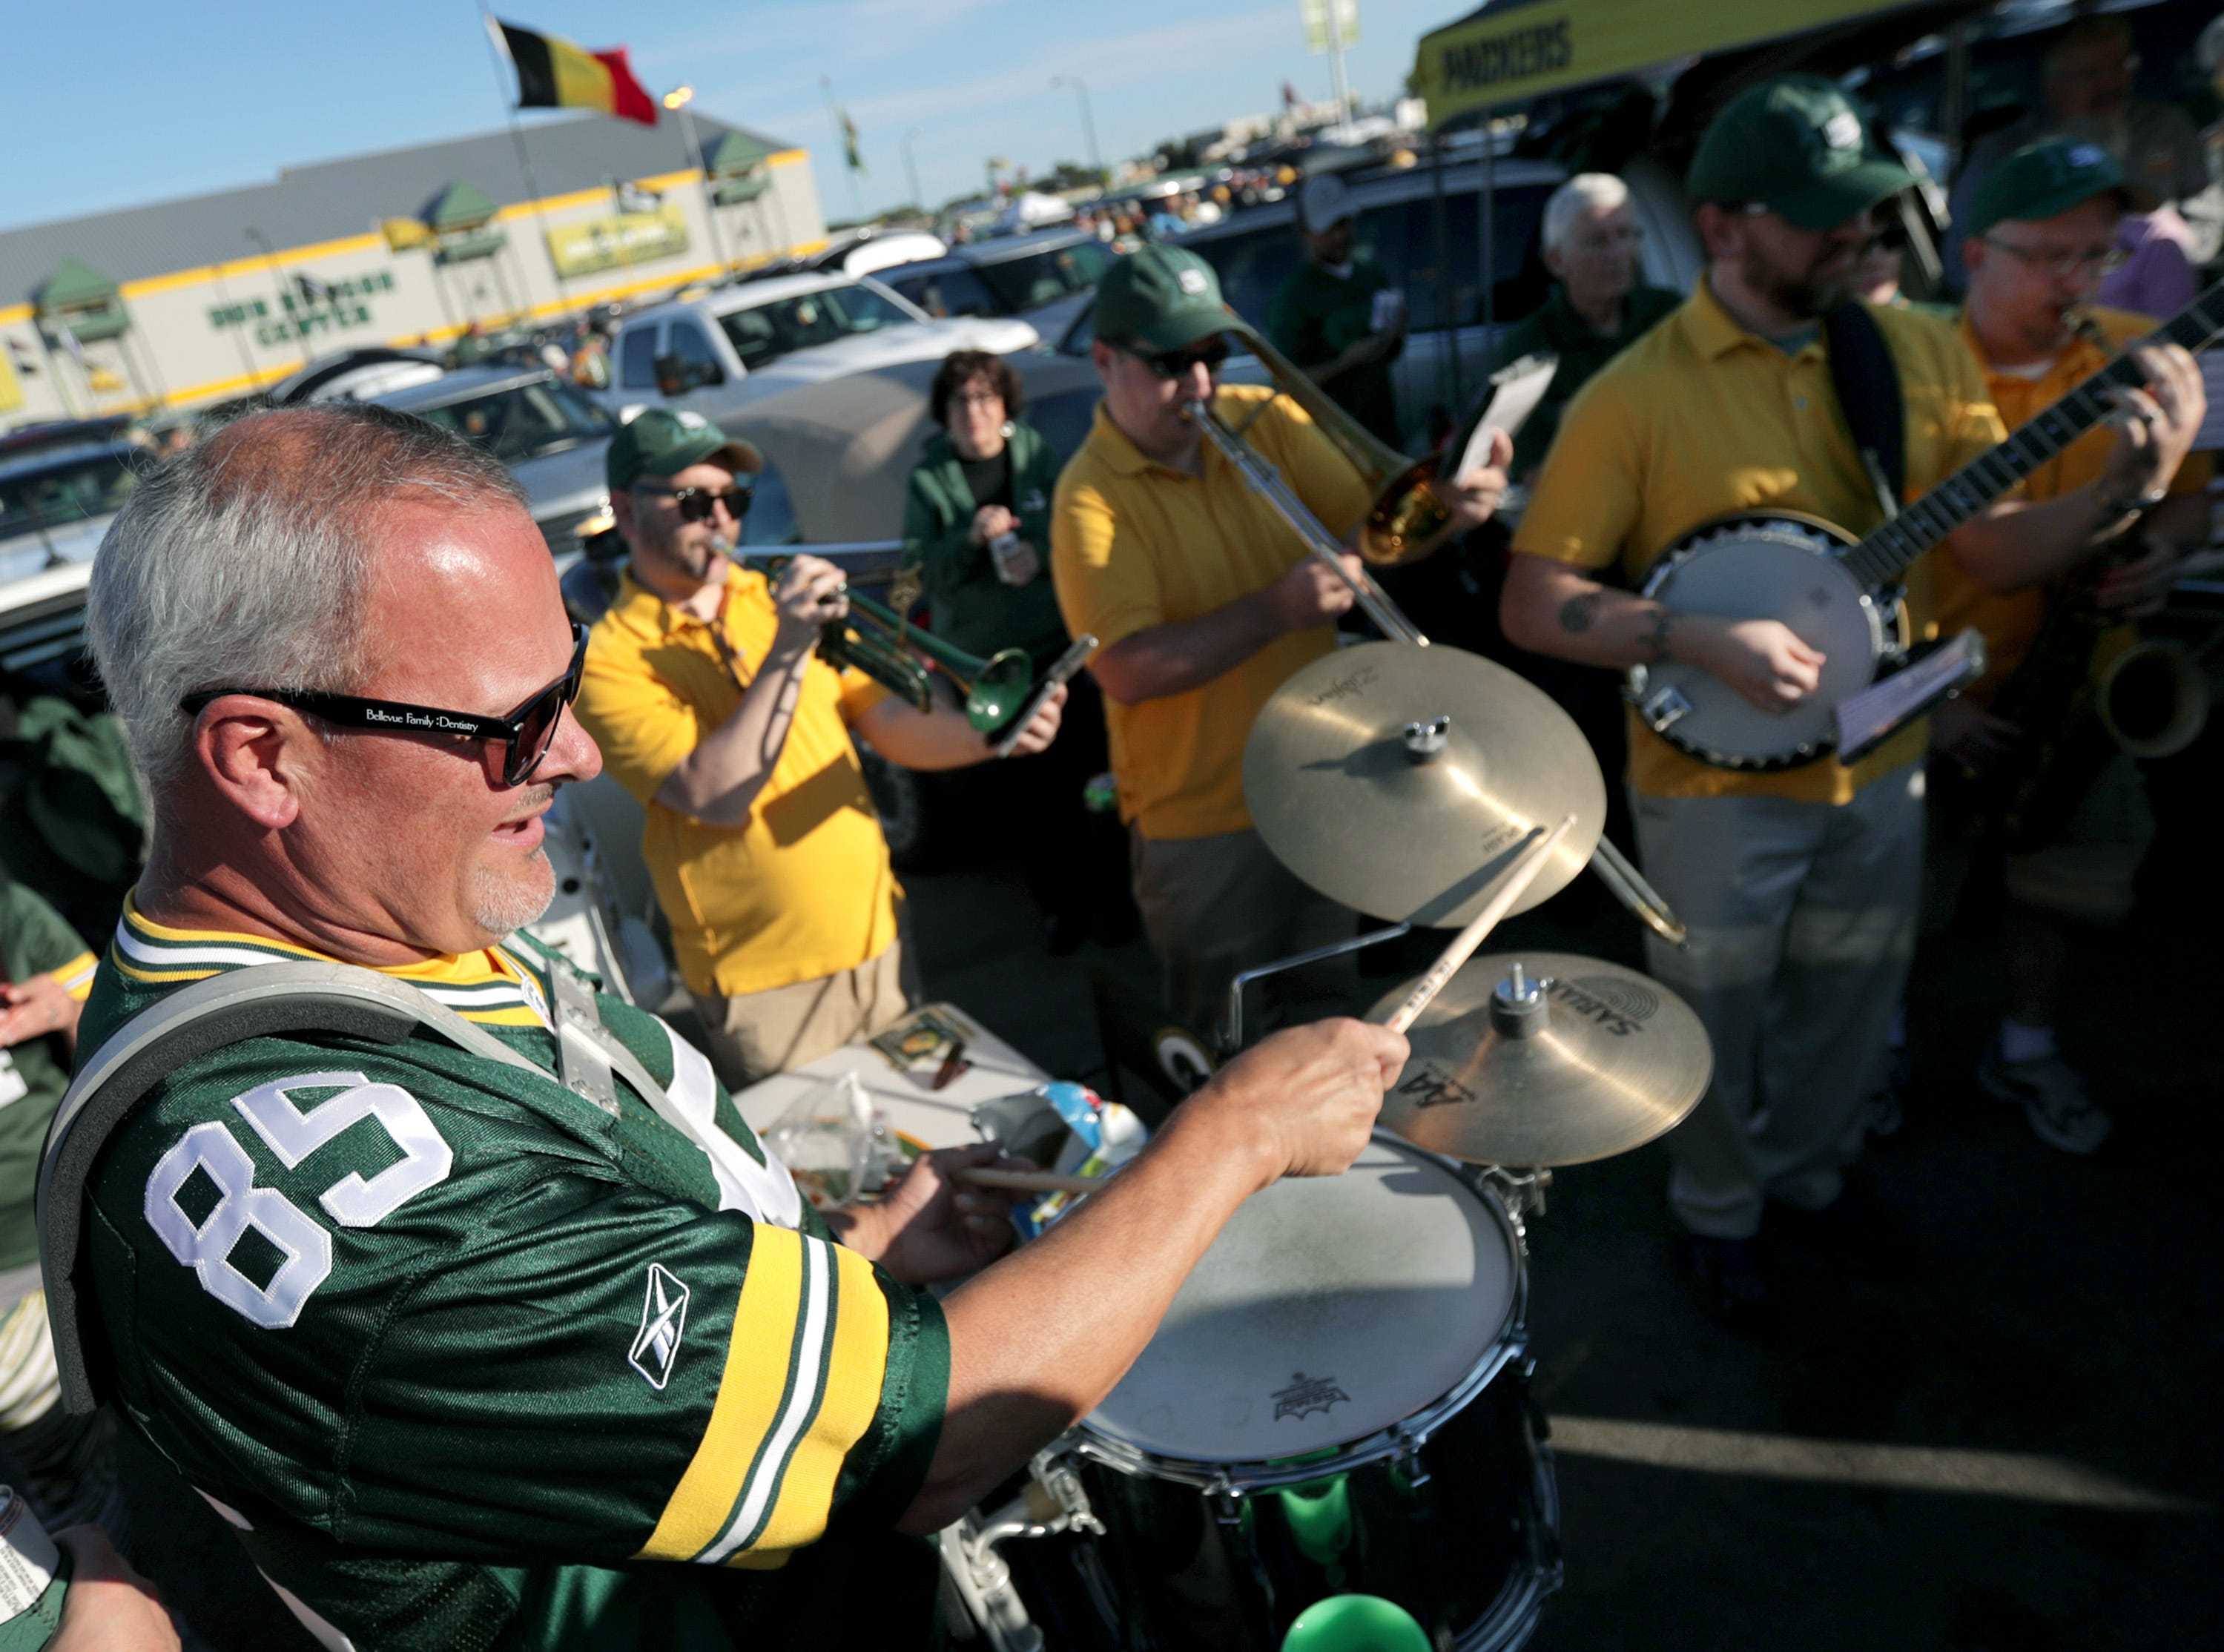 The Packers Tailgate Band plays befoe the Green Bay Packers host the Chicago Bears in the season opener on Sunday, September 9, 2018, at Lambeau Field in Green Bay, Wis.